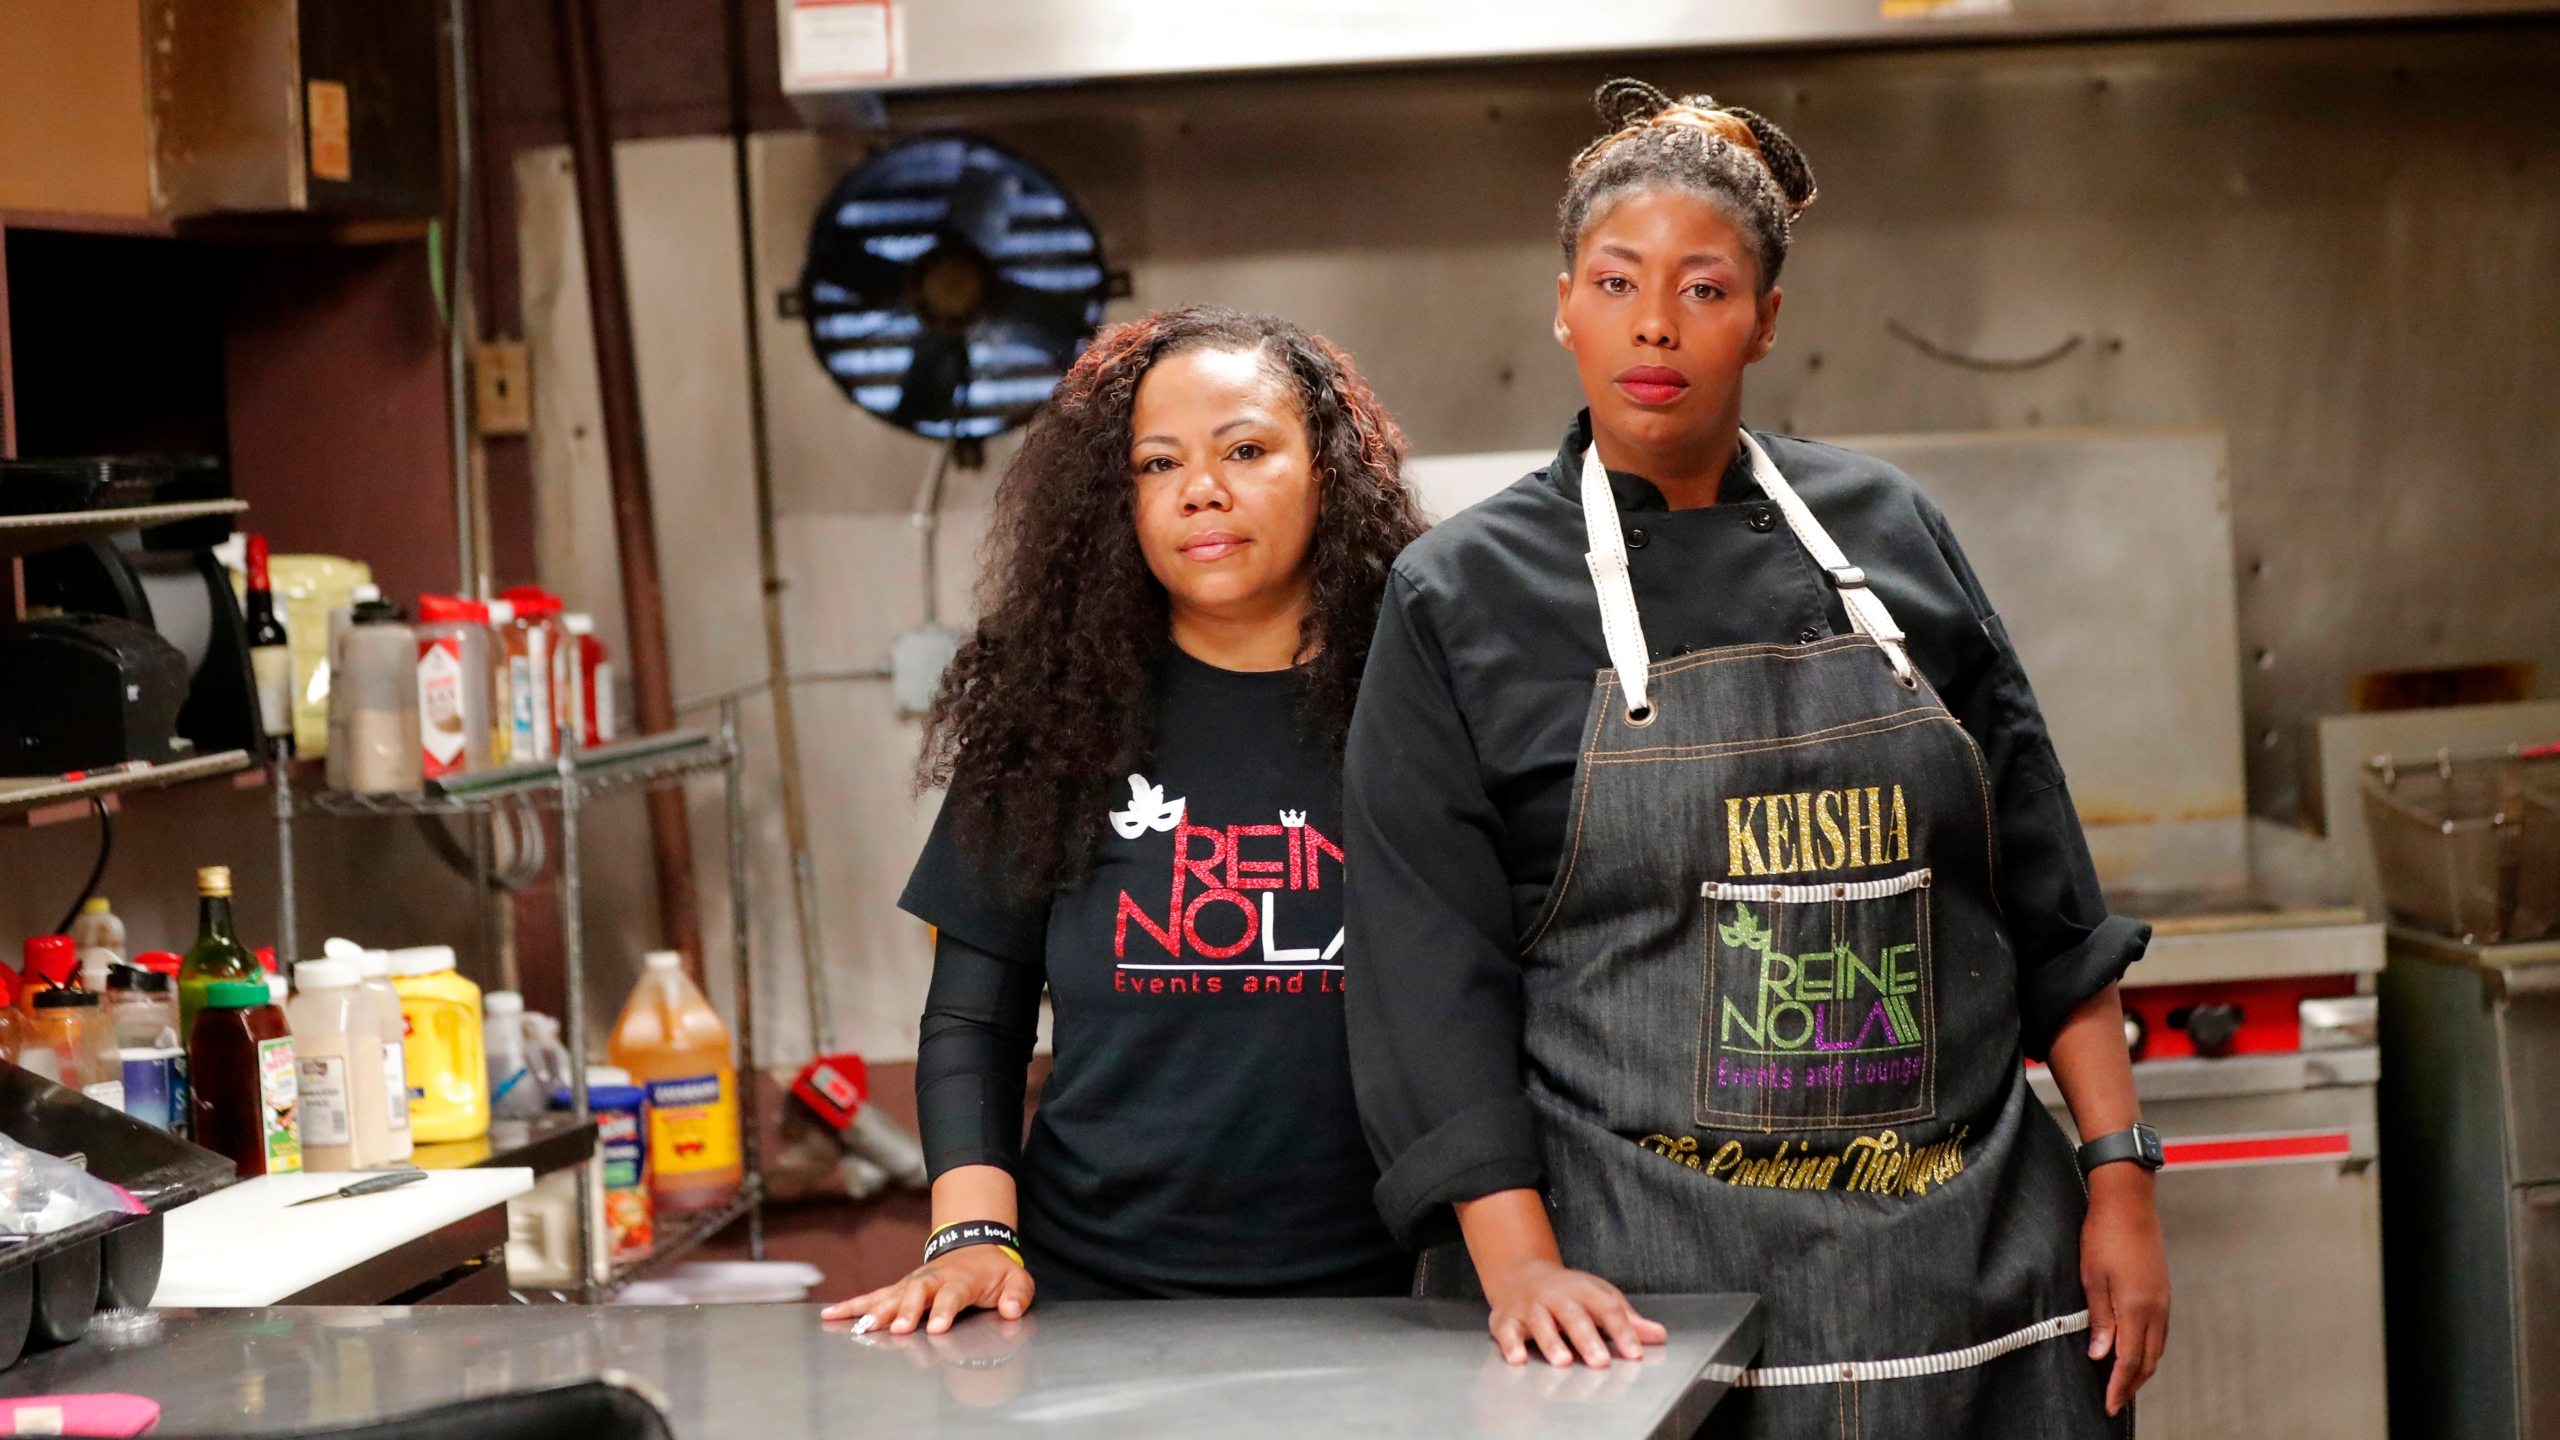 Keisha Henry, right, and her business partner Erica Norwood pose inside their lounge and catering business in New Orleans. Henry said she lost about $10,000 in revenue last week after three big functions she was slated to cater ended up canceling. Meanwhile, she still has expenses related to launching a bar and lounge six months ago. Henry said she regrettably had to lay off several employees. (AP/Gerald Herbert)